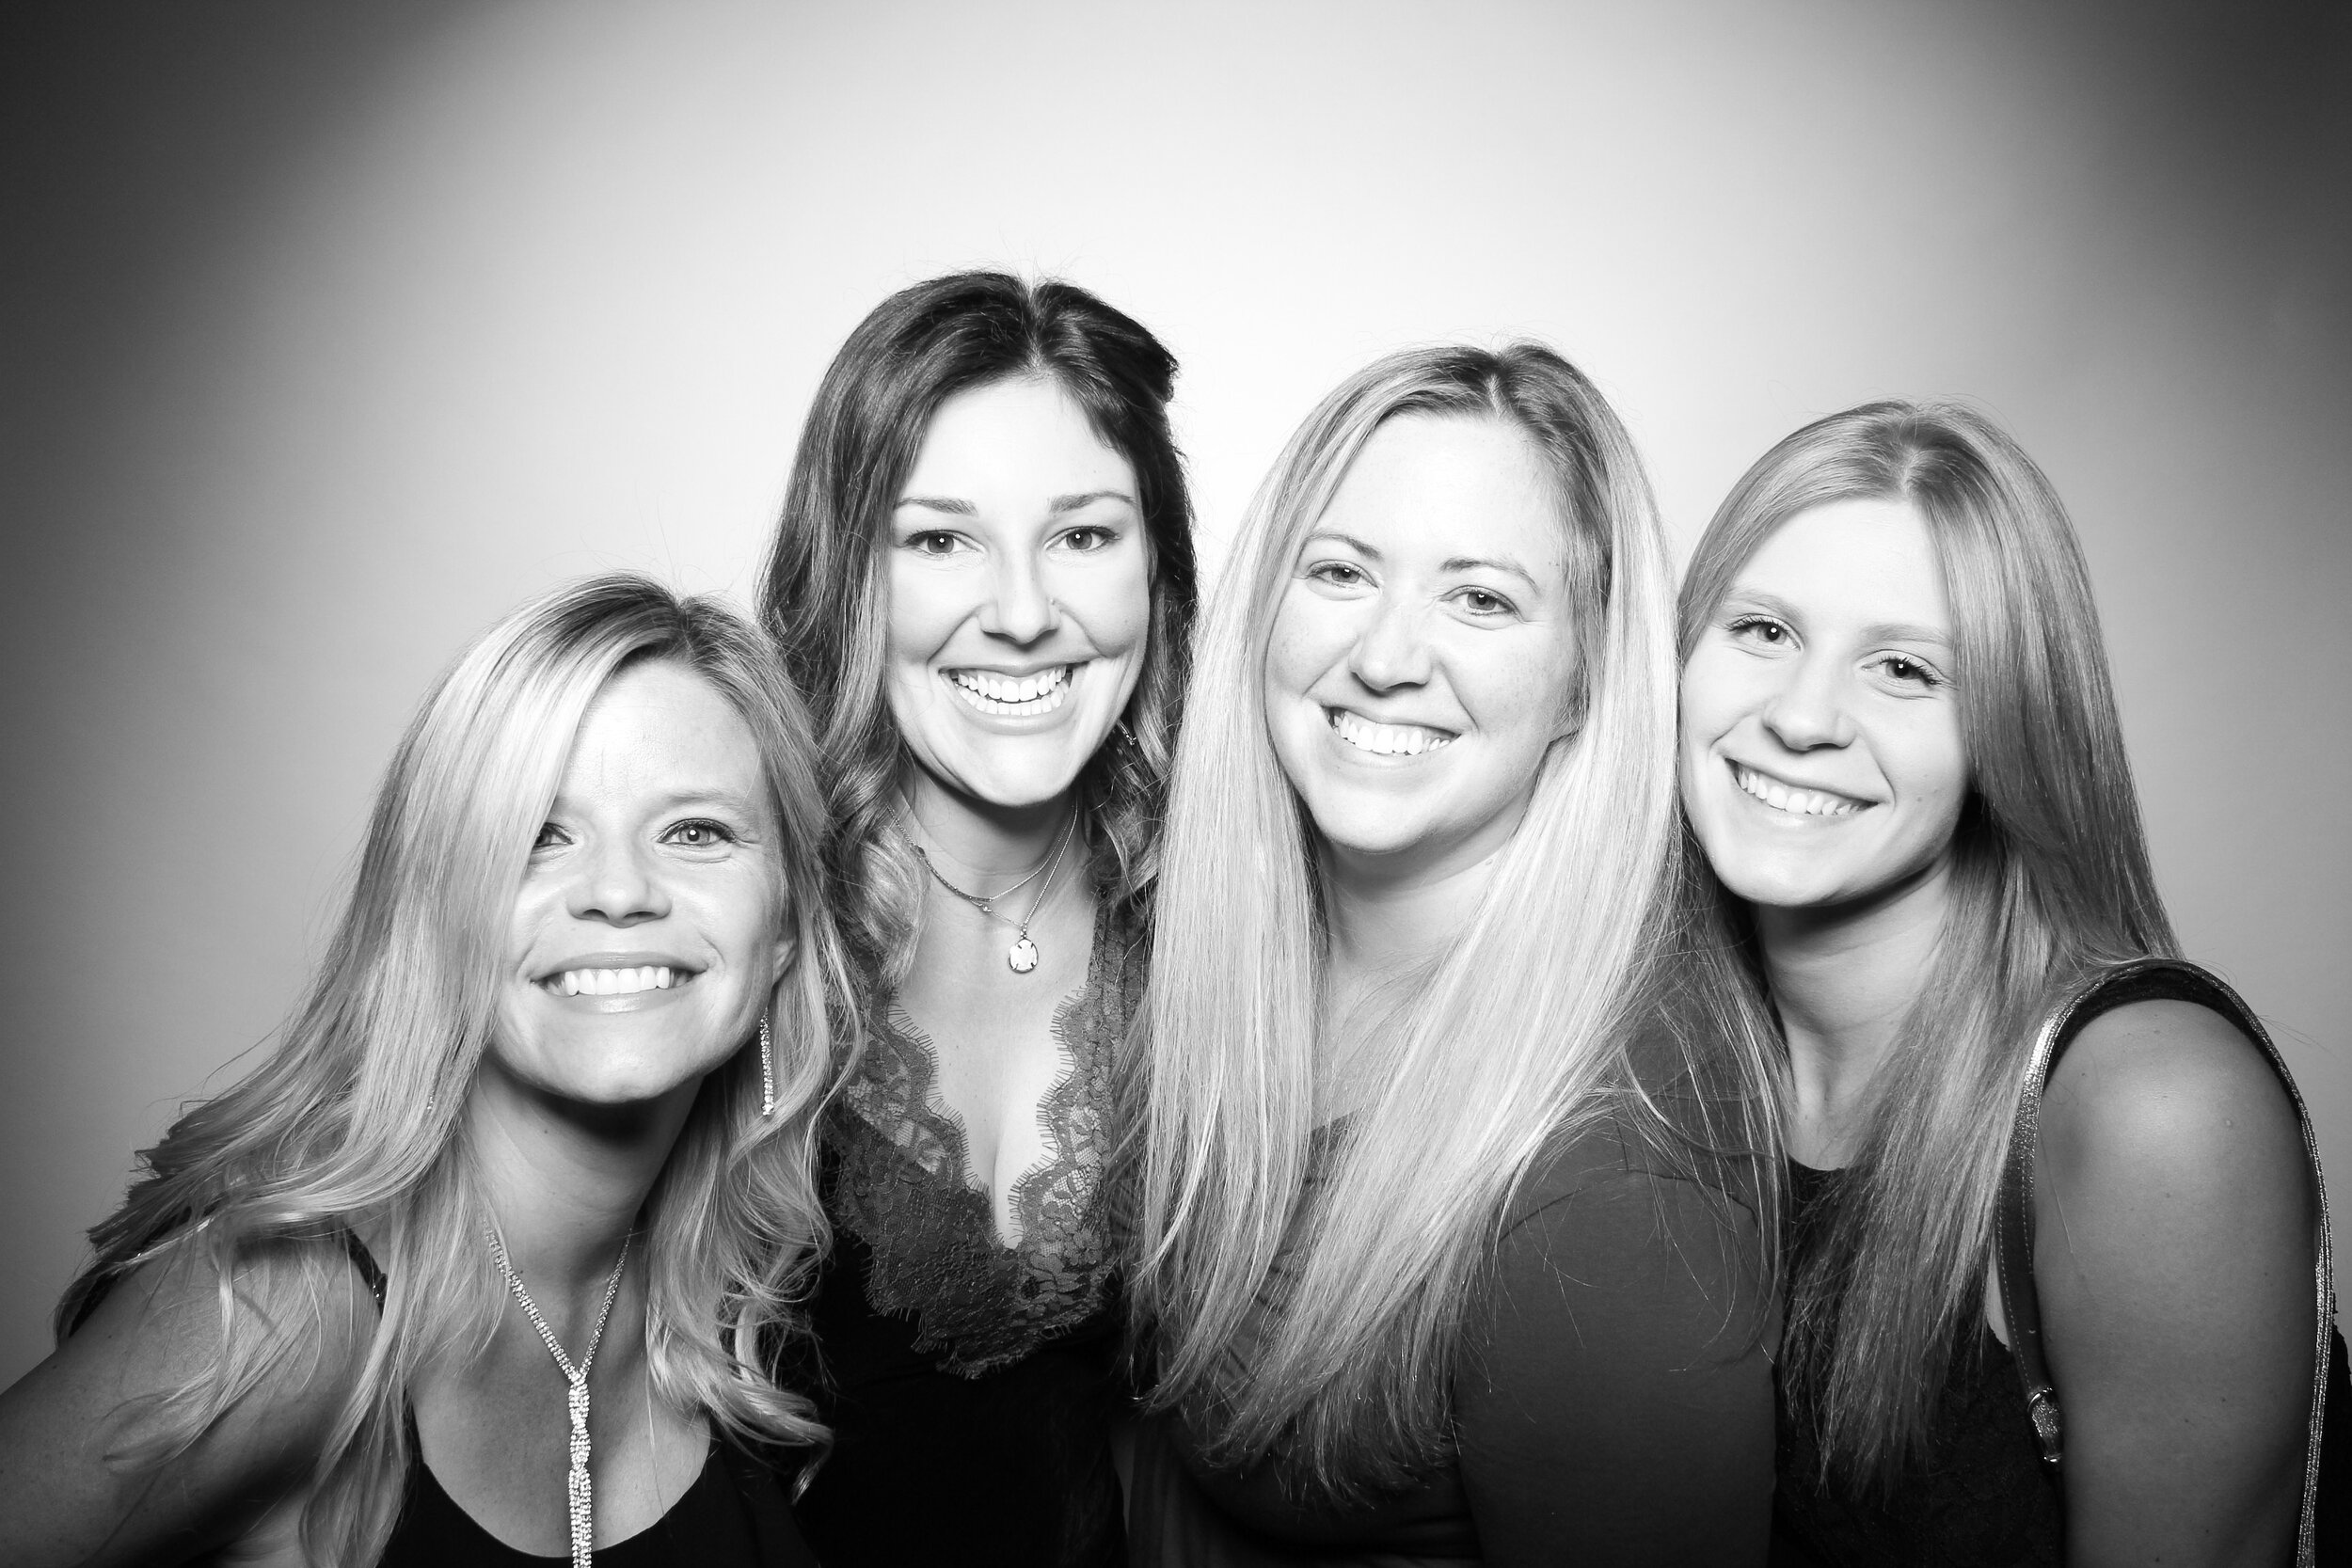 Mir_Mir_Kardashian_Style_Black_and_White_Photo_Booth_Chicago_07.jpg